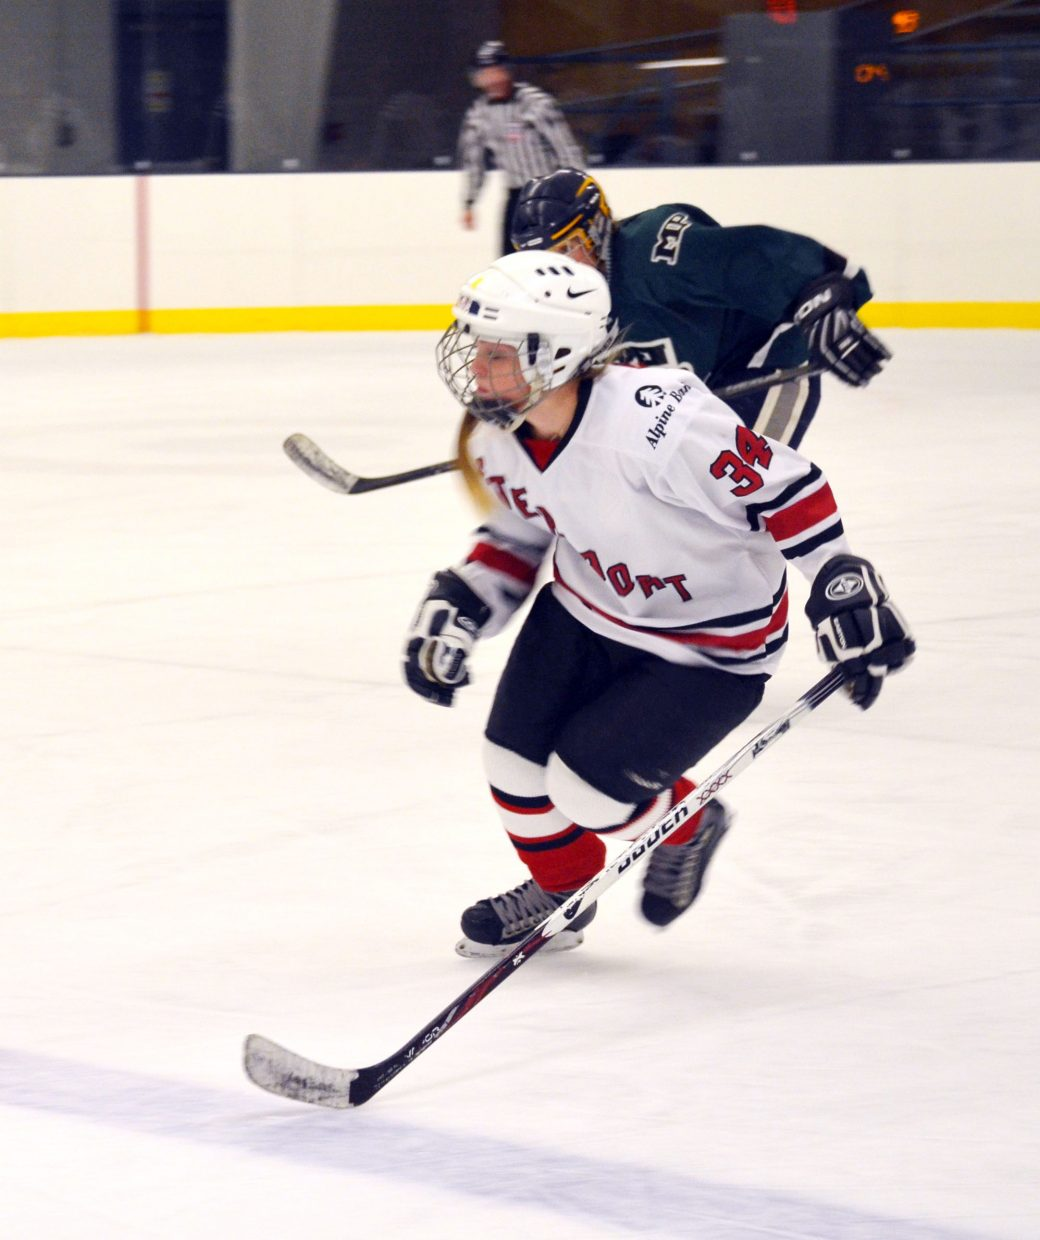 Sammy Stabile plays during the weekend at the Aspen Fall Face Off hockey tournament in Aspen.